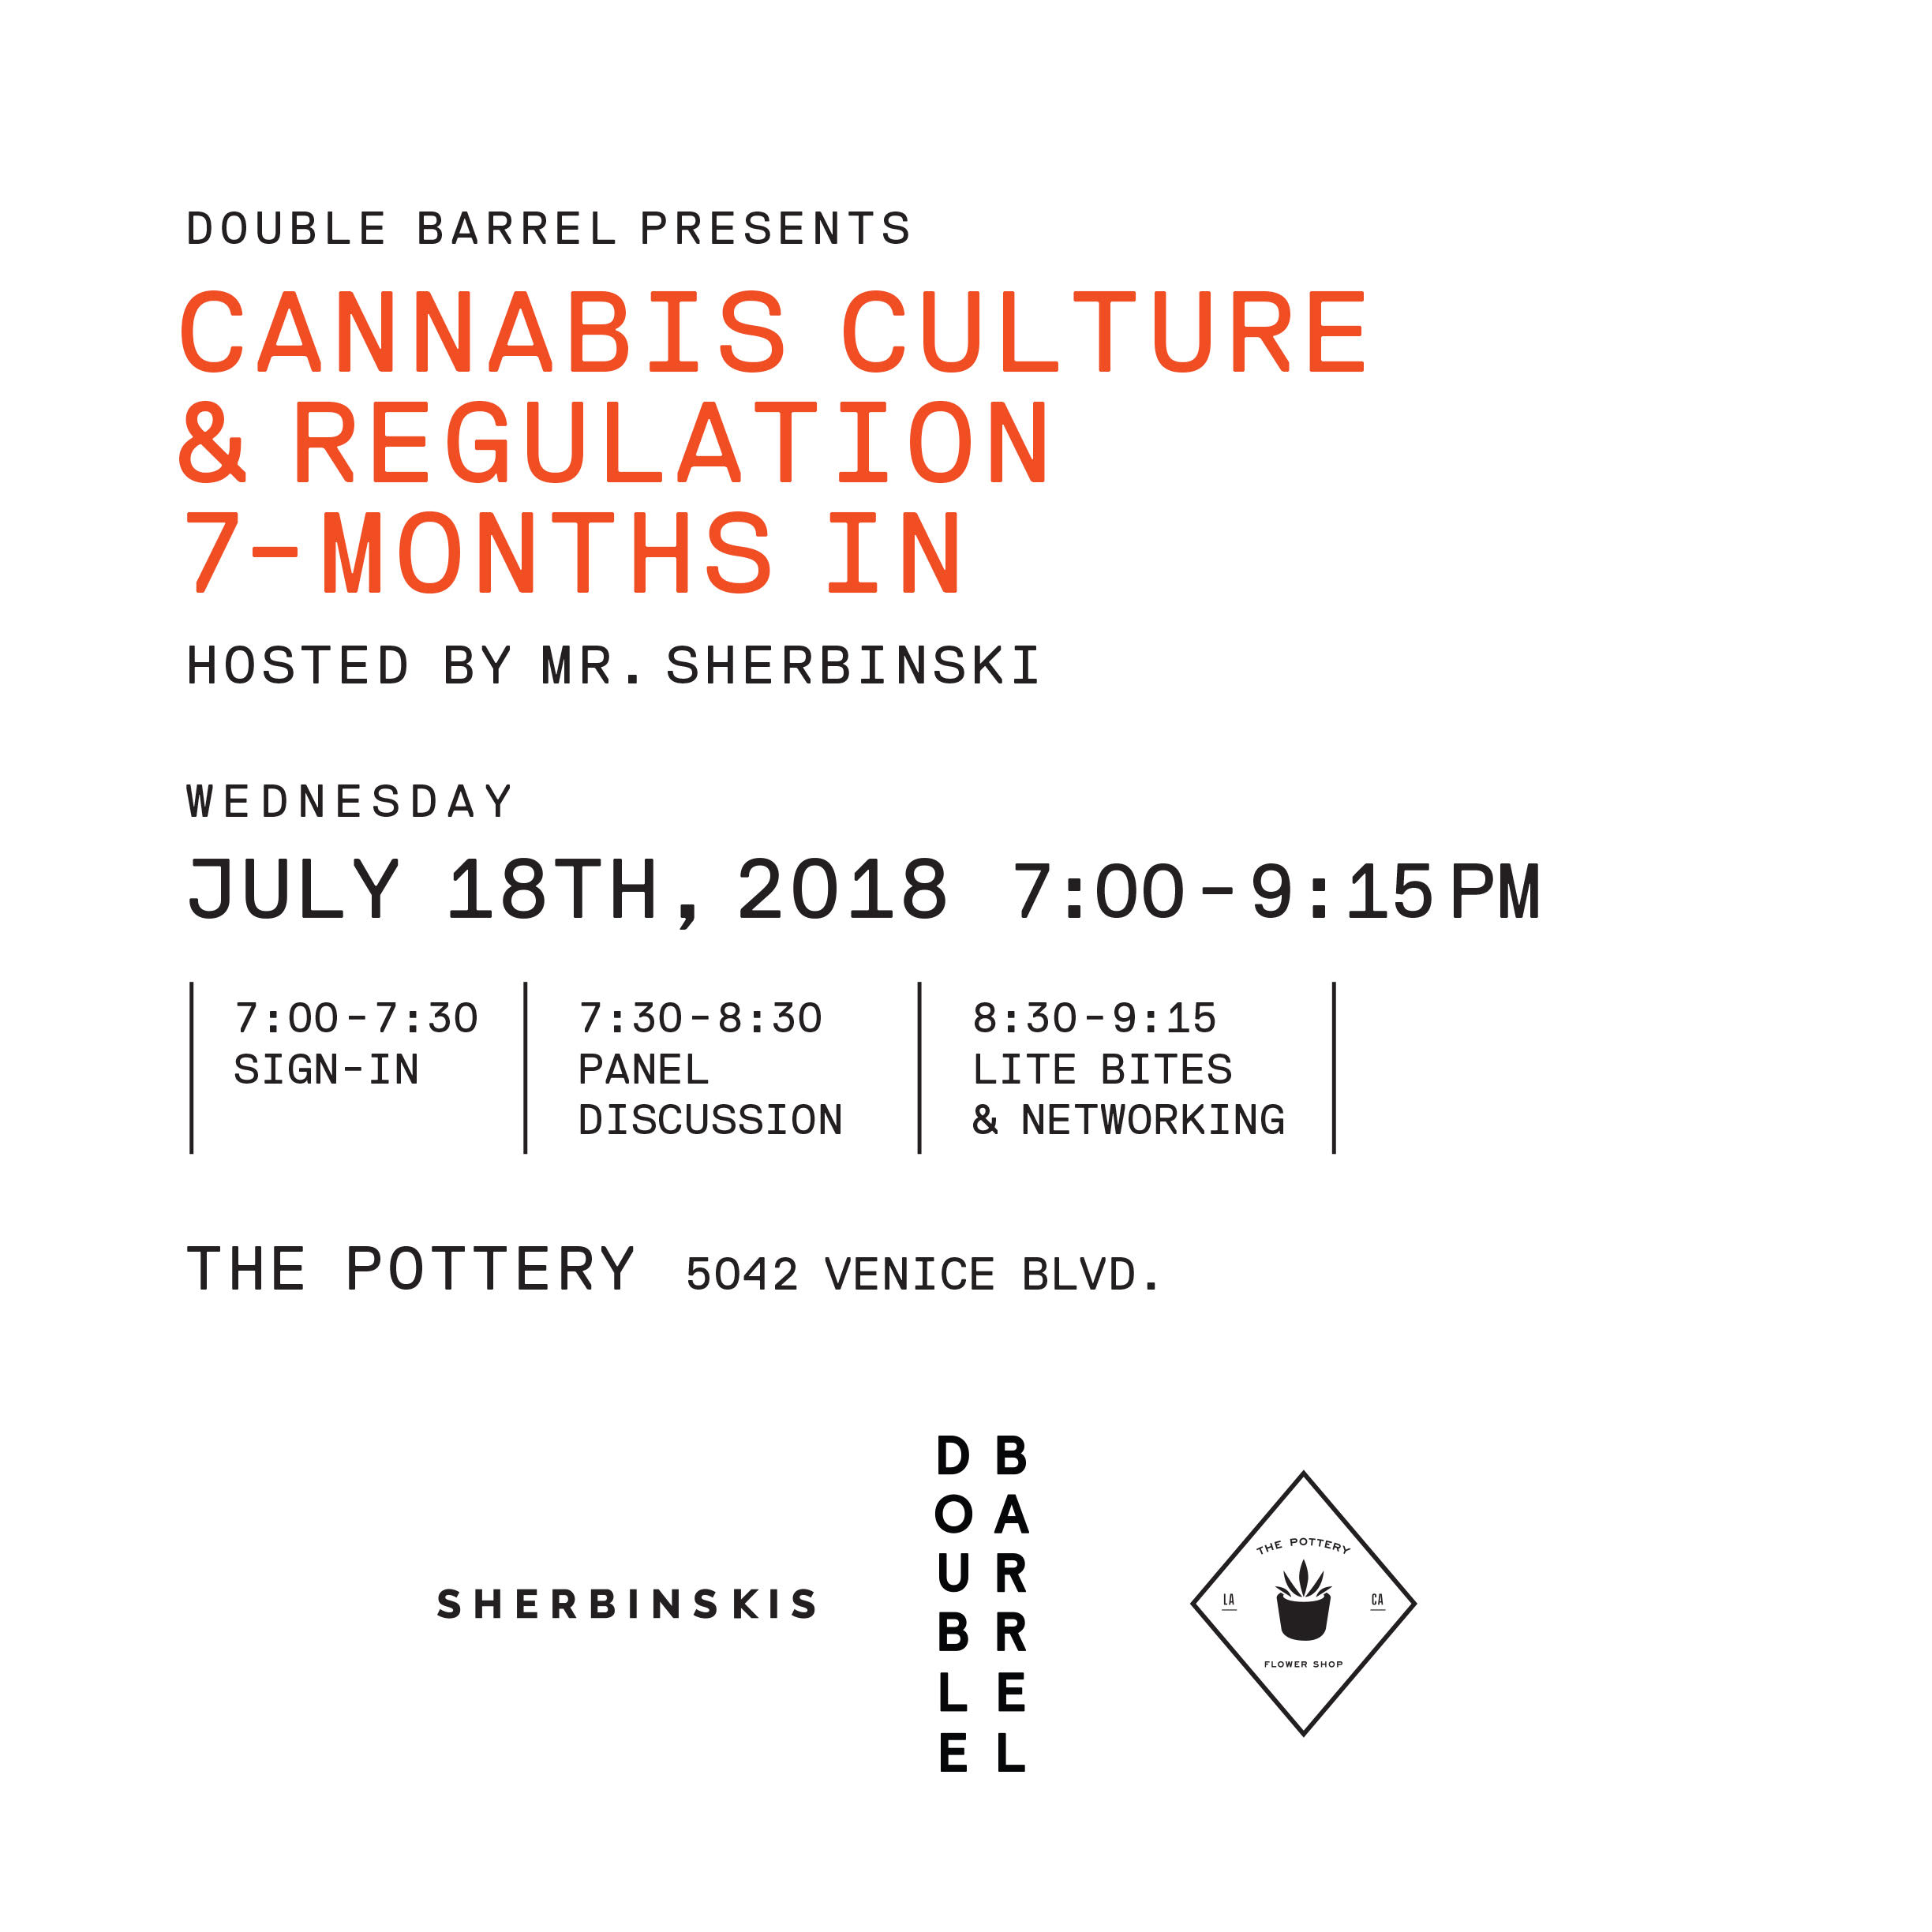 0e2345d8f4c8 The Pottery Cannabis Dispensary in Los Angeles